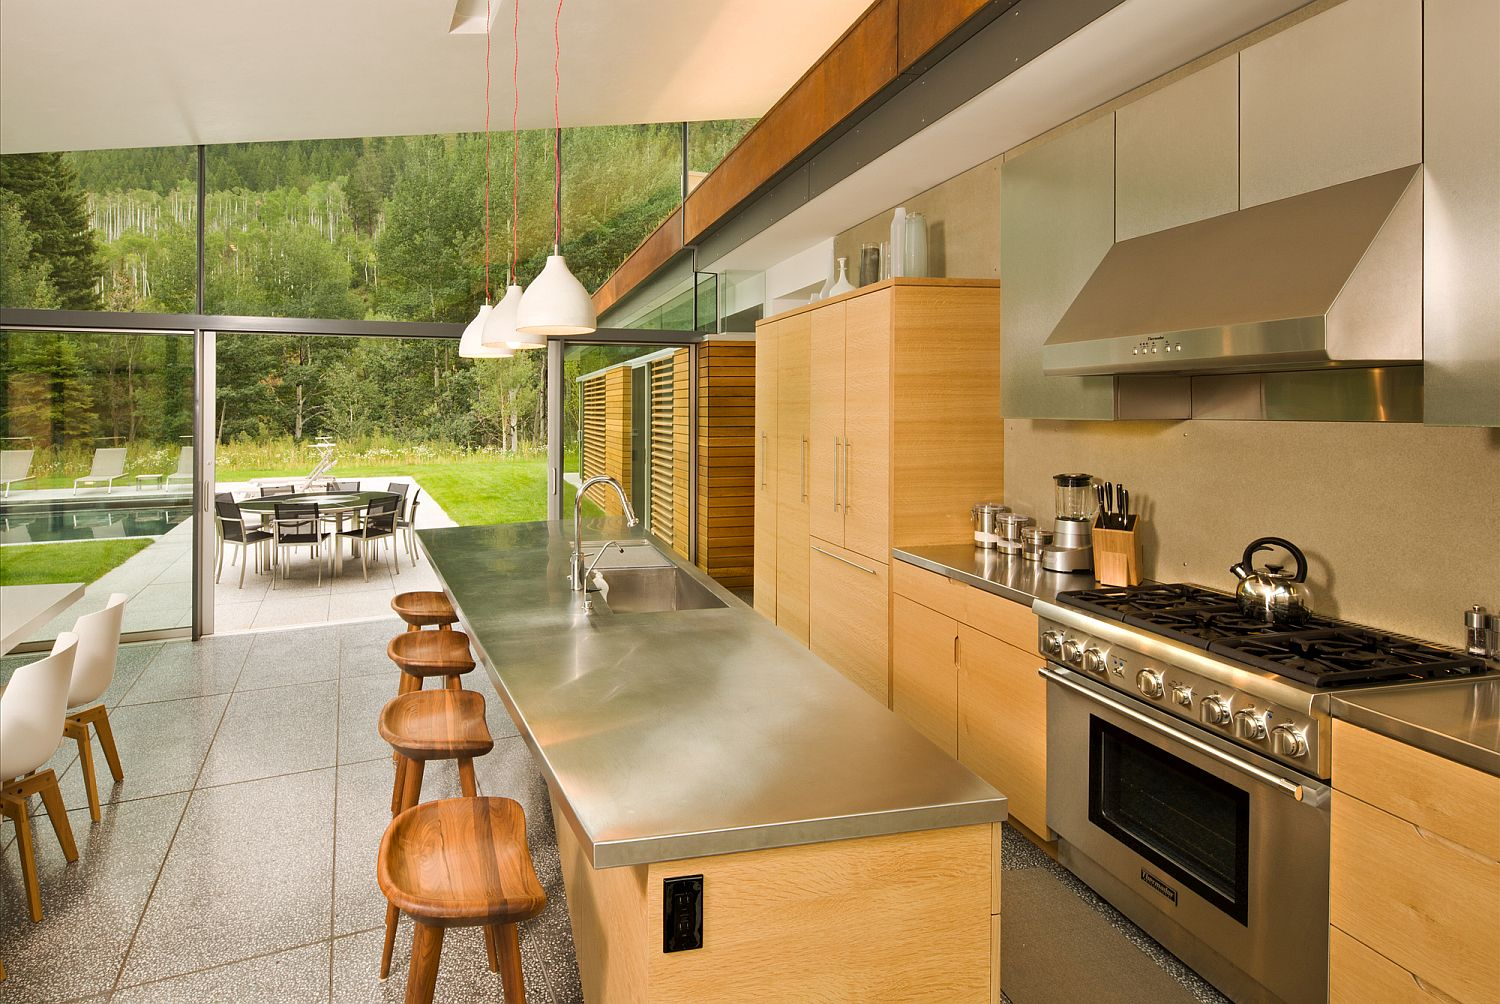 Wood and metal kitchen with a view of the pool outside